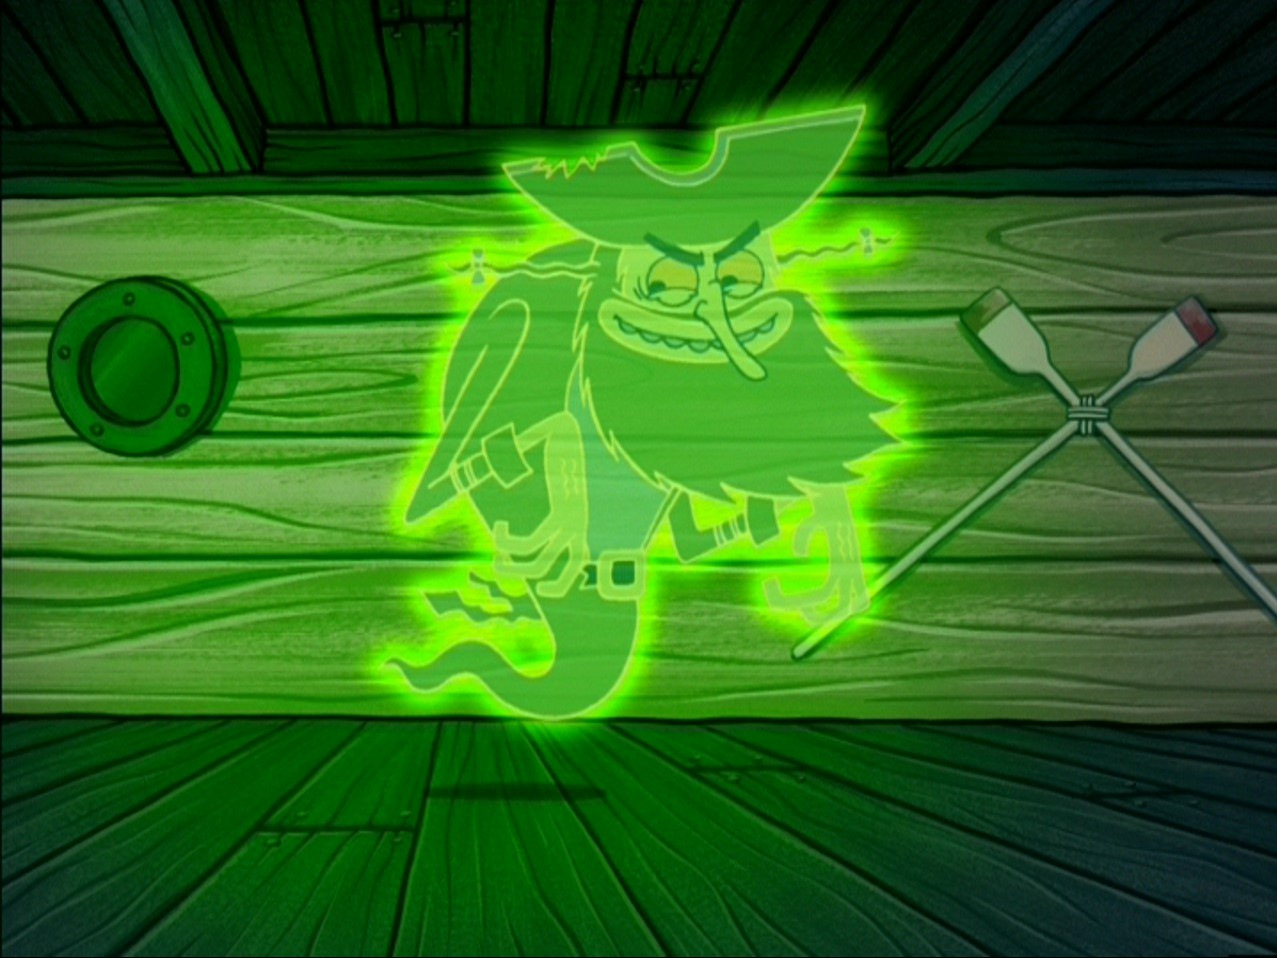 Image - The Flying Dutchman.jpg - Encyclopedia SpongeBobia ...